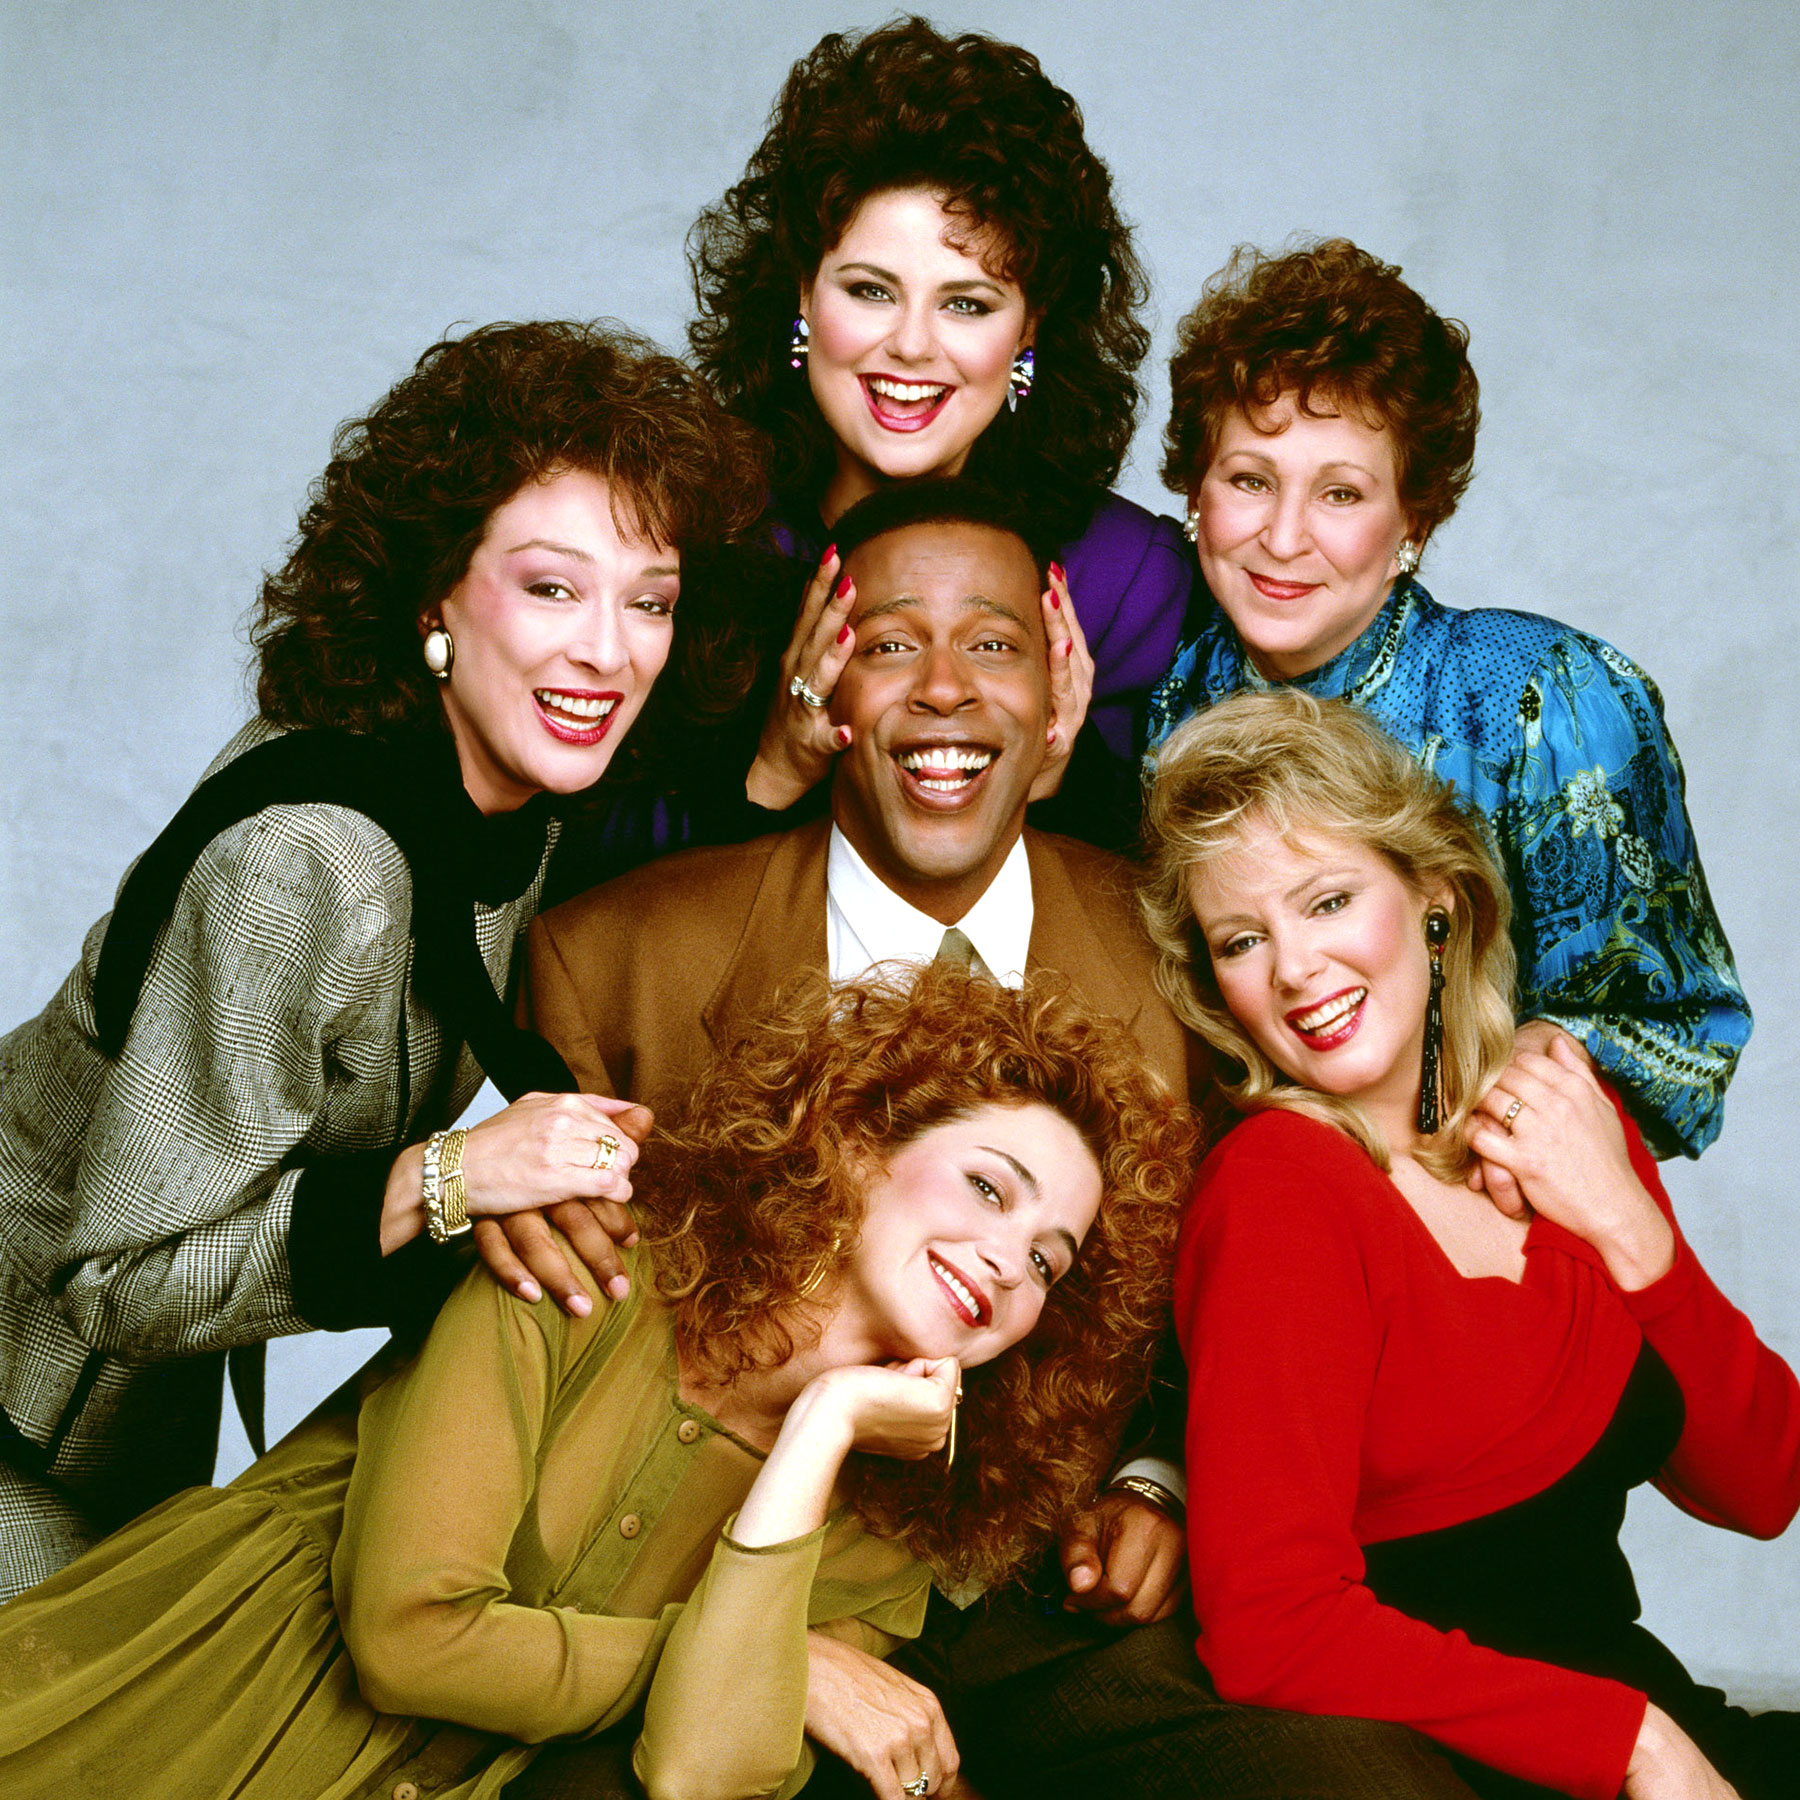 DESIGNING WOMEN, Dixie Carter, Delta Burke, Meshach Taylor, Annie Potts, Alice Ghostley, Jean Smart,